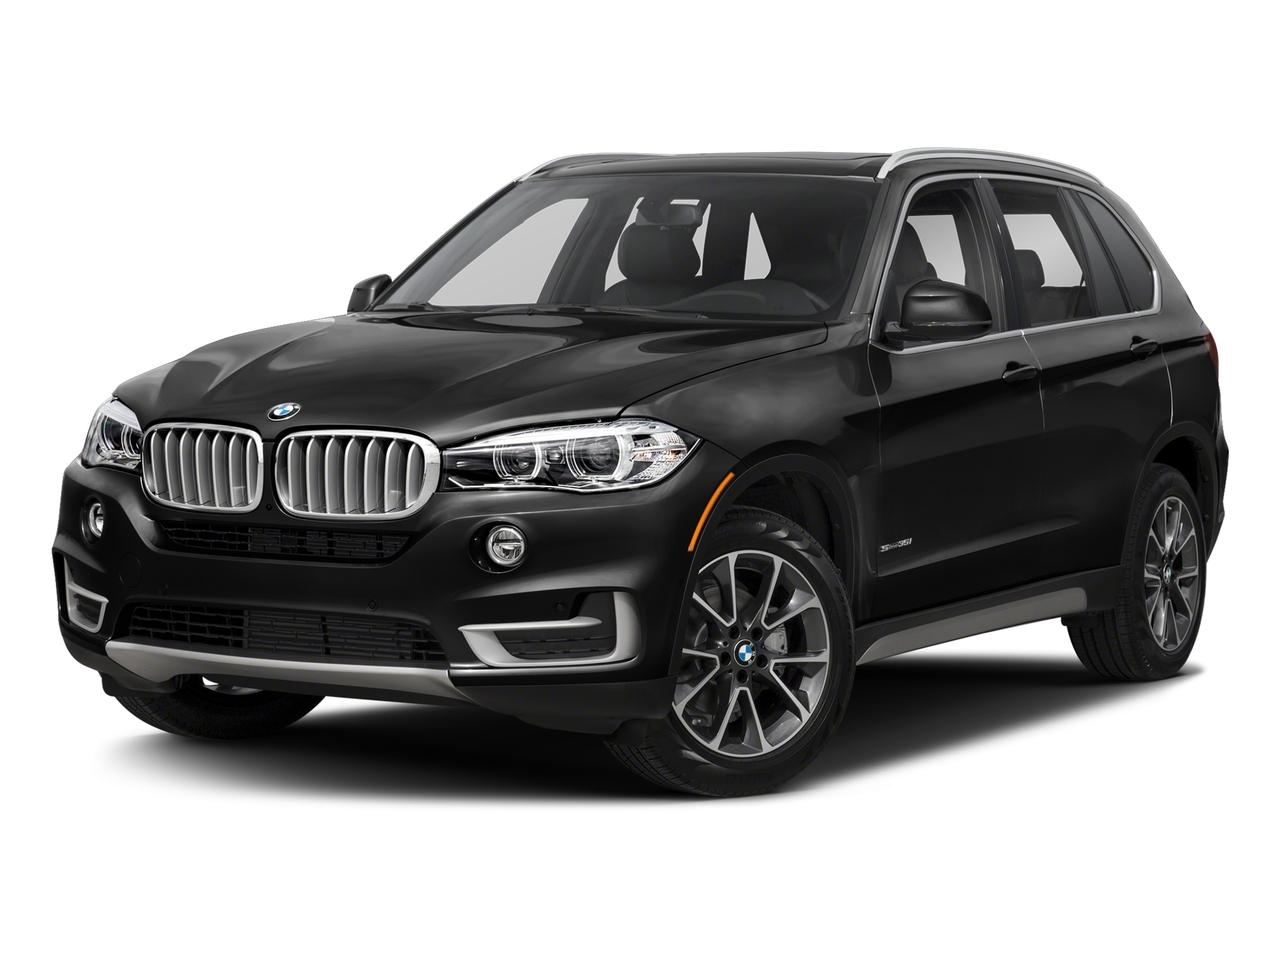 2018 BMW X5 xDrive35d Vehicle Photo in Pleasanton, CA 94588